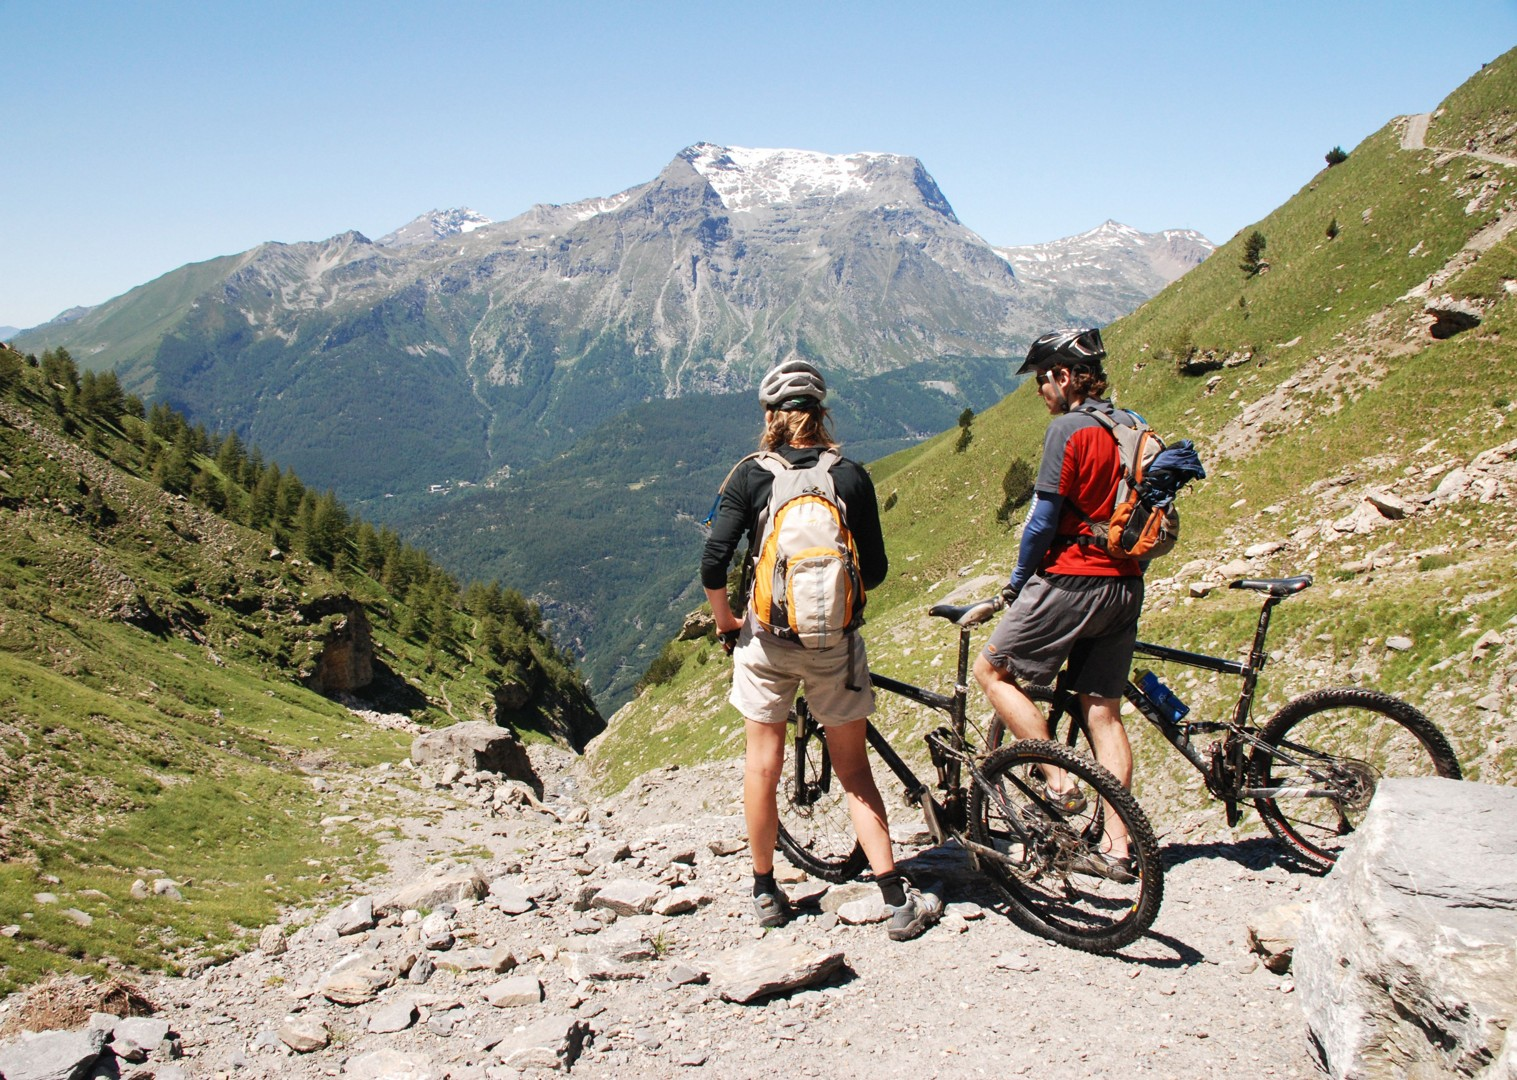 guided-mountain-bike-holiday-italy-and-france-alpine-adventure.JPG - Italy and France - Alpine Adventure - Guided Mountain Bike Holiday - Mountain Biking